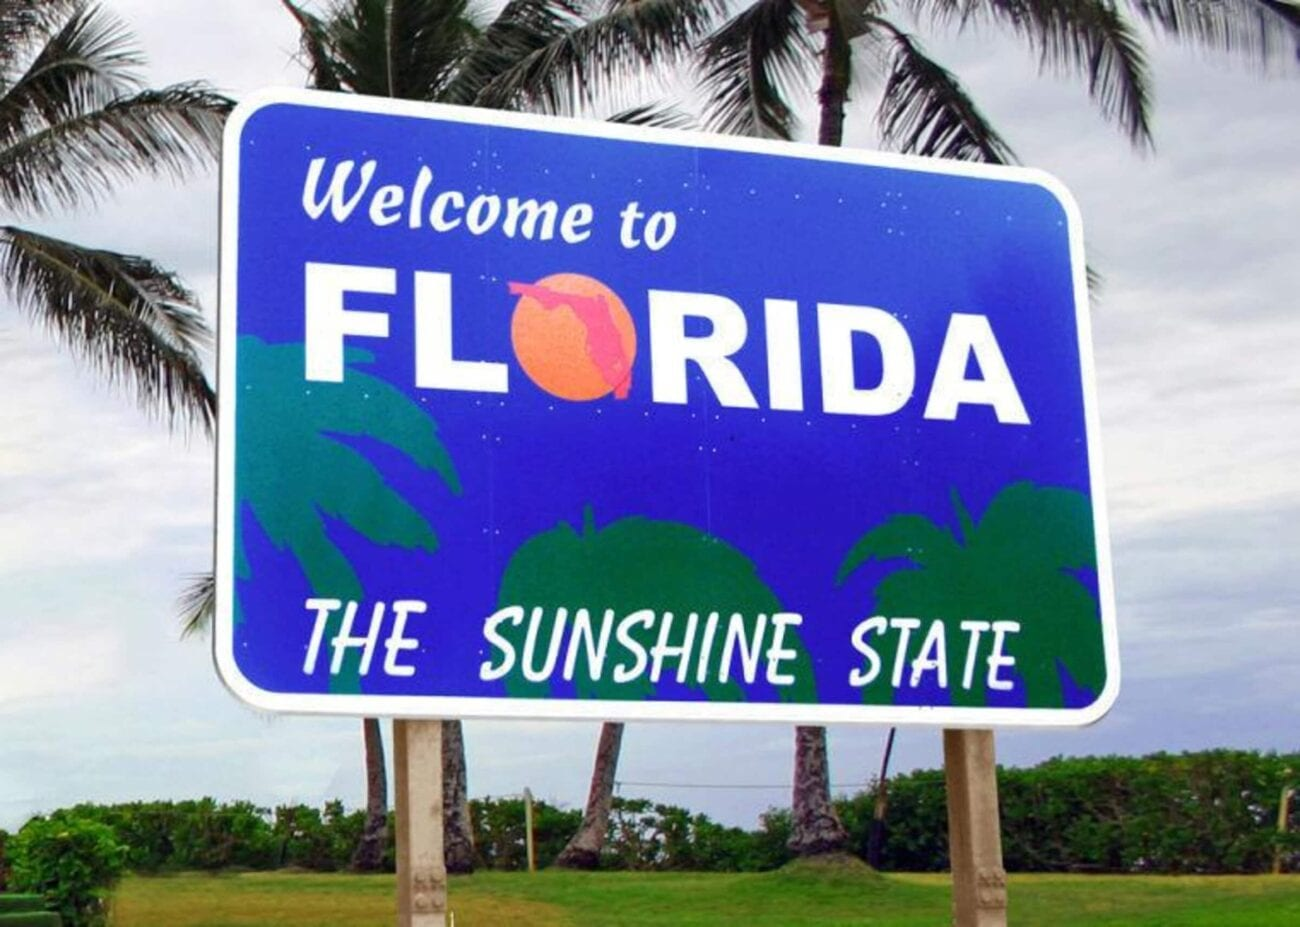 Ah, Florida Man! With endless headlines about his antics, we have endless memes to cringe at. Roar with laughter at these stories from the Sunshine State.